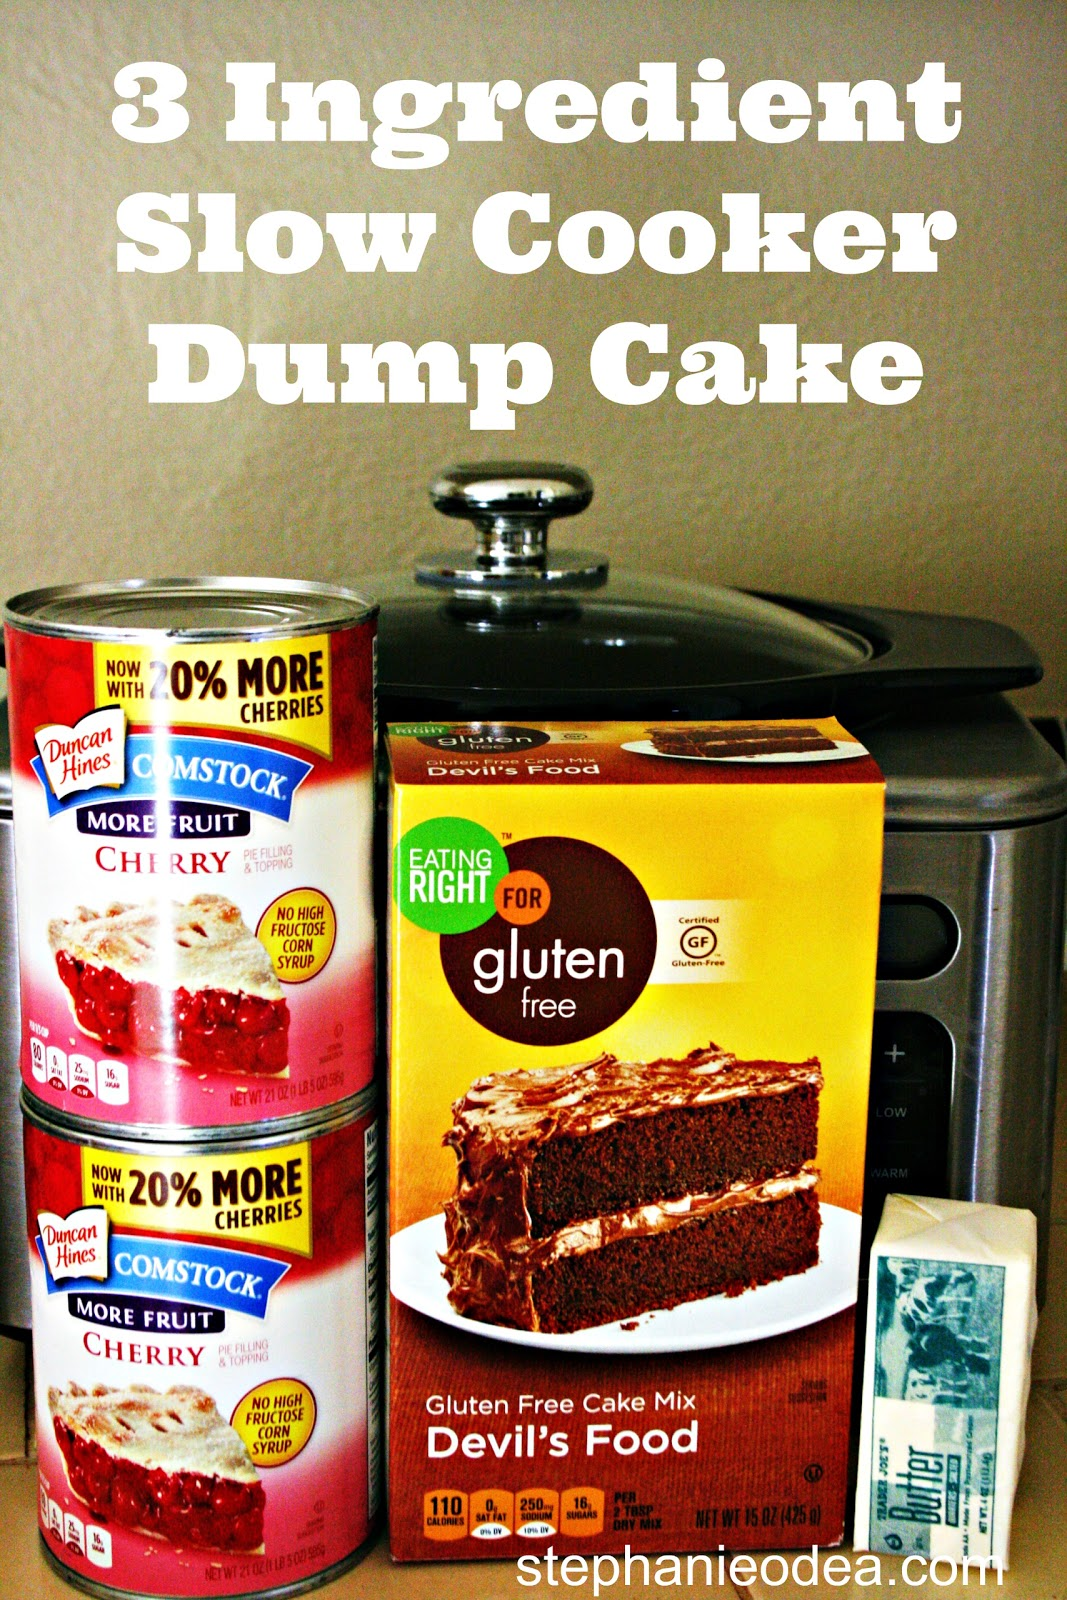 3 Ingredient Slow Cooker Dump Cake. Use your own favorite combo -- yellow cake with apple pie, white cake with blueberry, etc!!